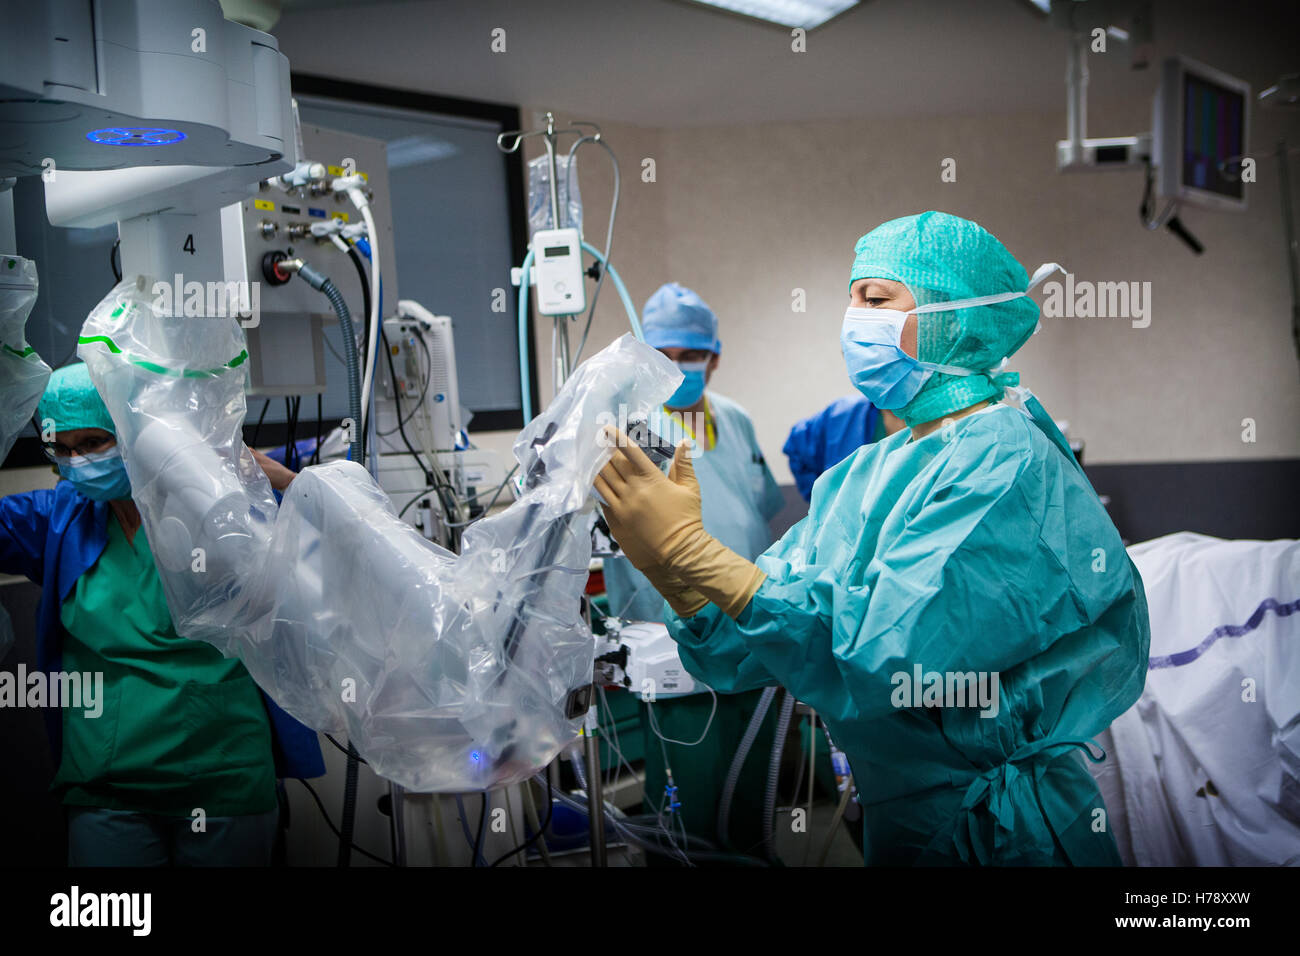 ROBOT-ASSISTED SURGERY Stock Photo